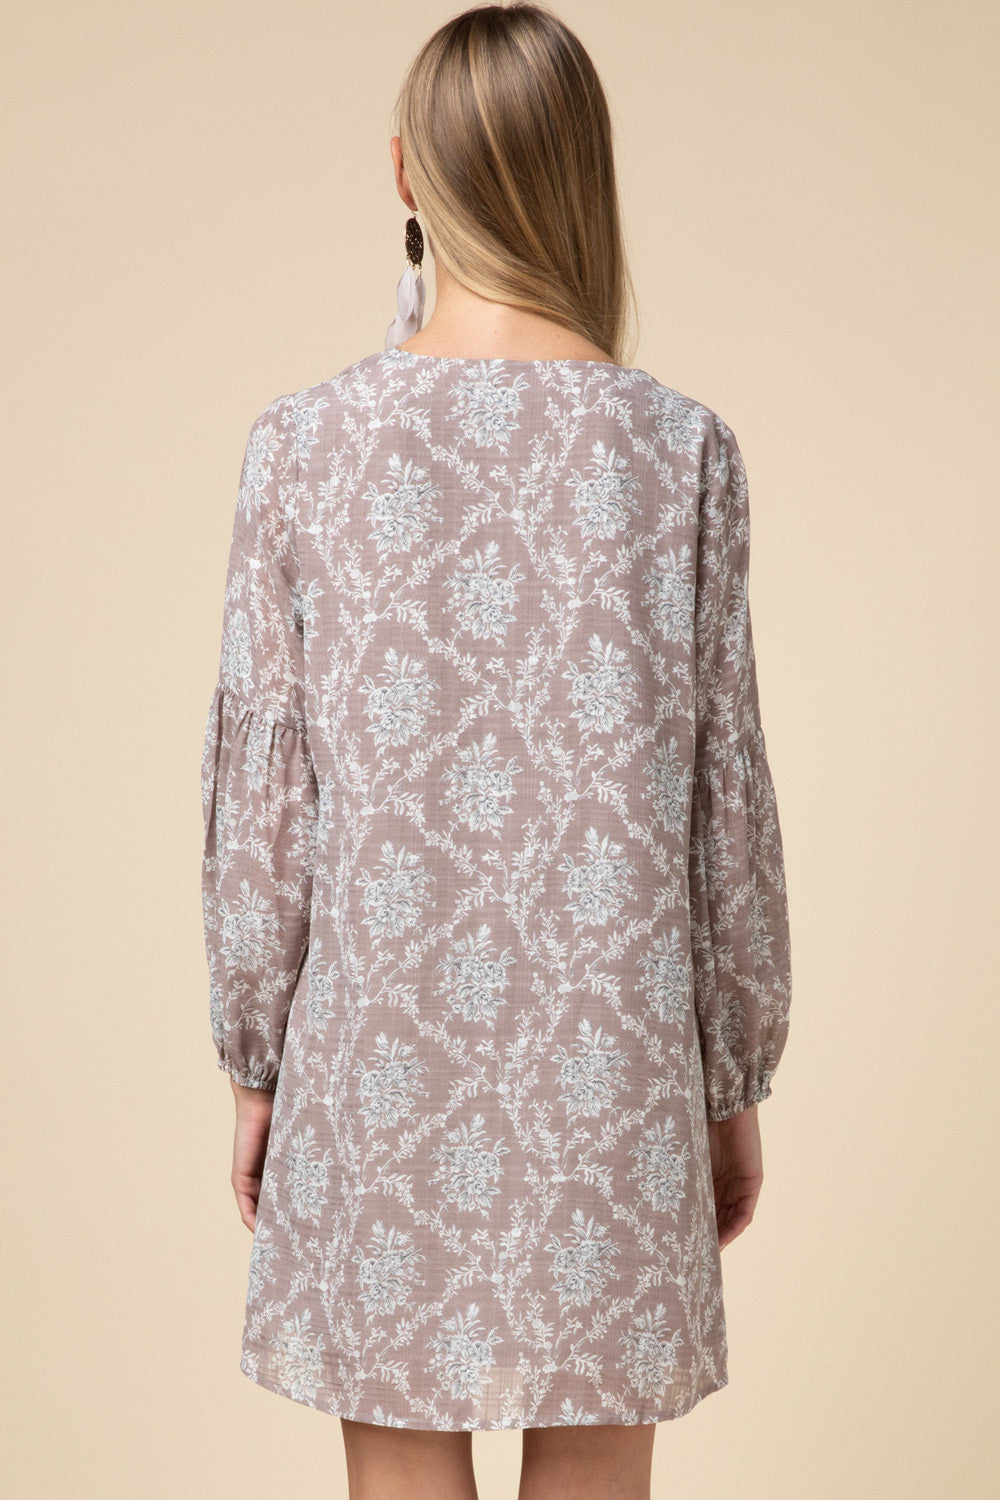 LAST CALL SIZE S | Ornate Floral Long Sleeve Dress